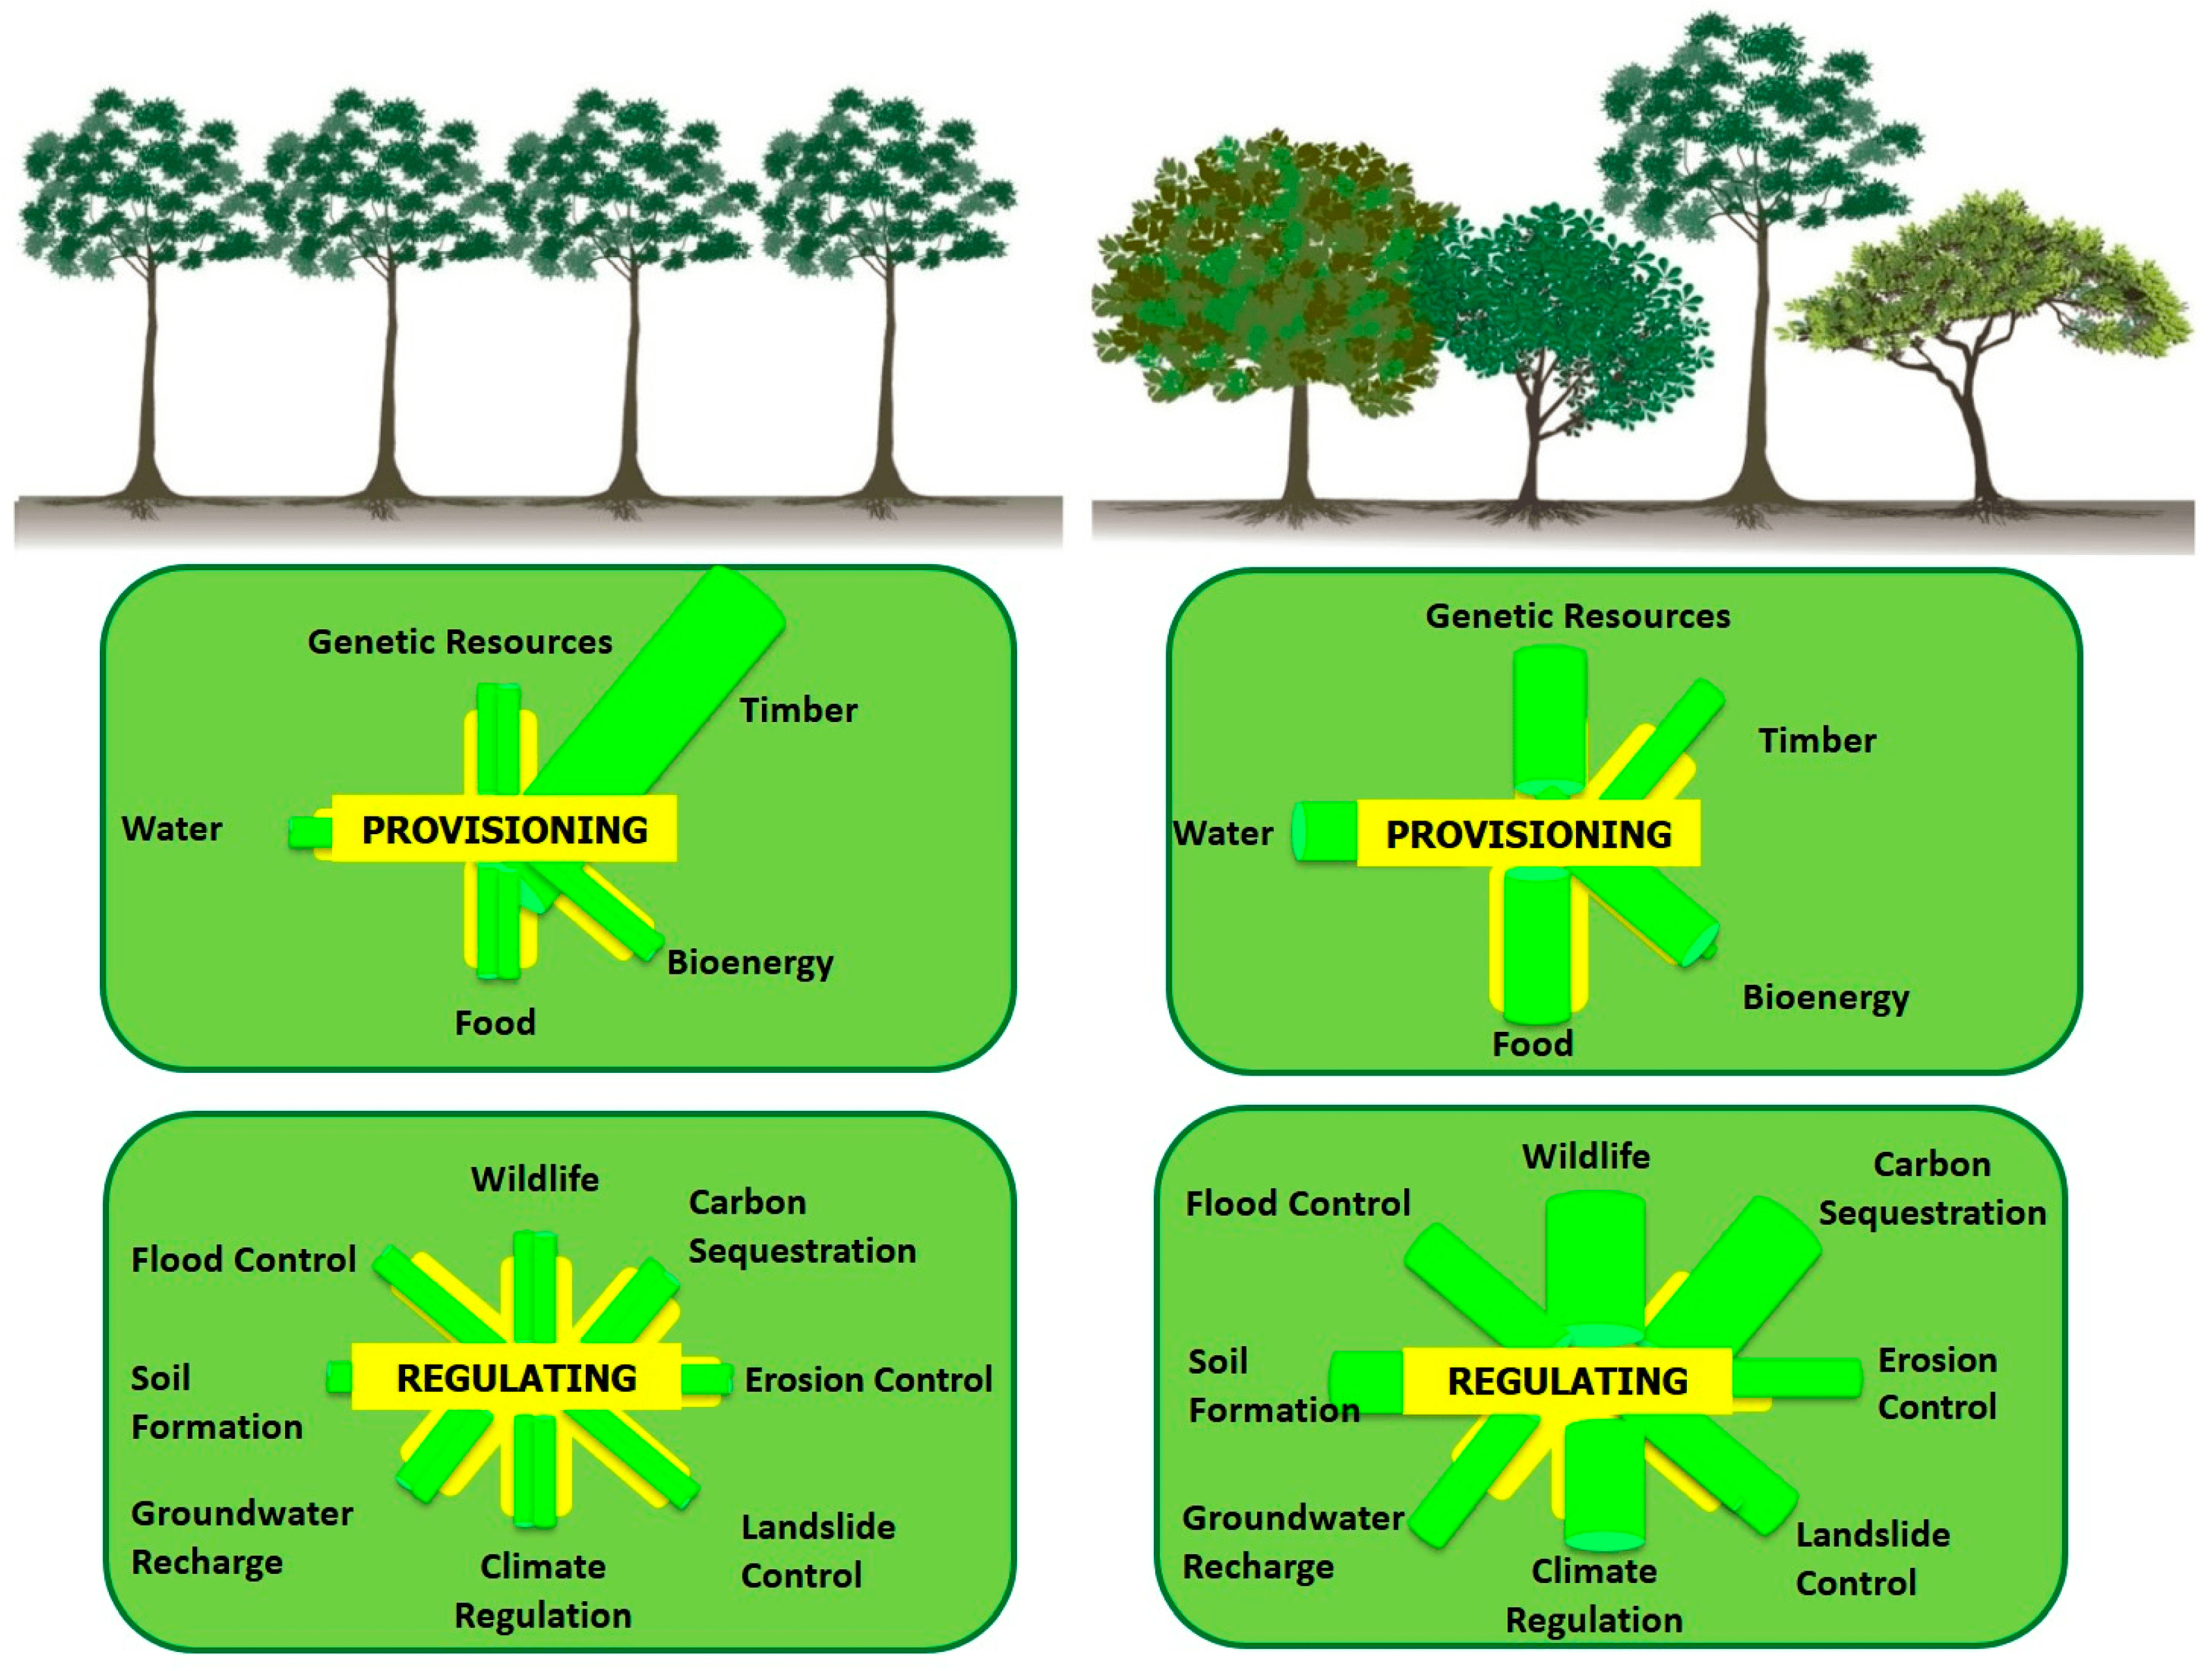 Northern temperate forests are often composed of deciduous trees that drop their leaves each year, providing a supply of rich nutrients to animals and plants as. Forests Free Full Text Tropical And Highland Temperate Forest Plantations In Mexico Pathways For Climate Change Mitigation And Ecosystem Services Delivery Html